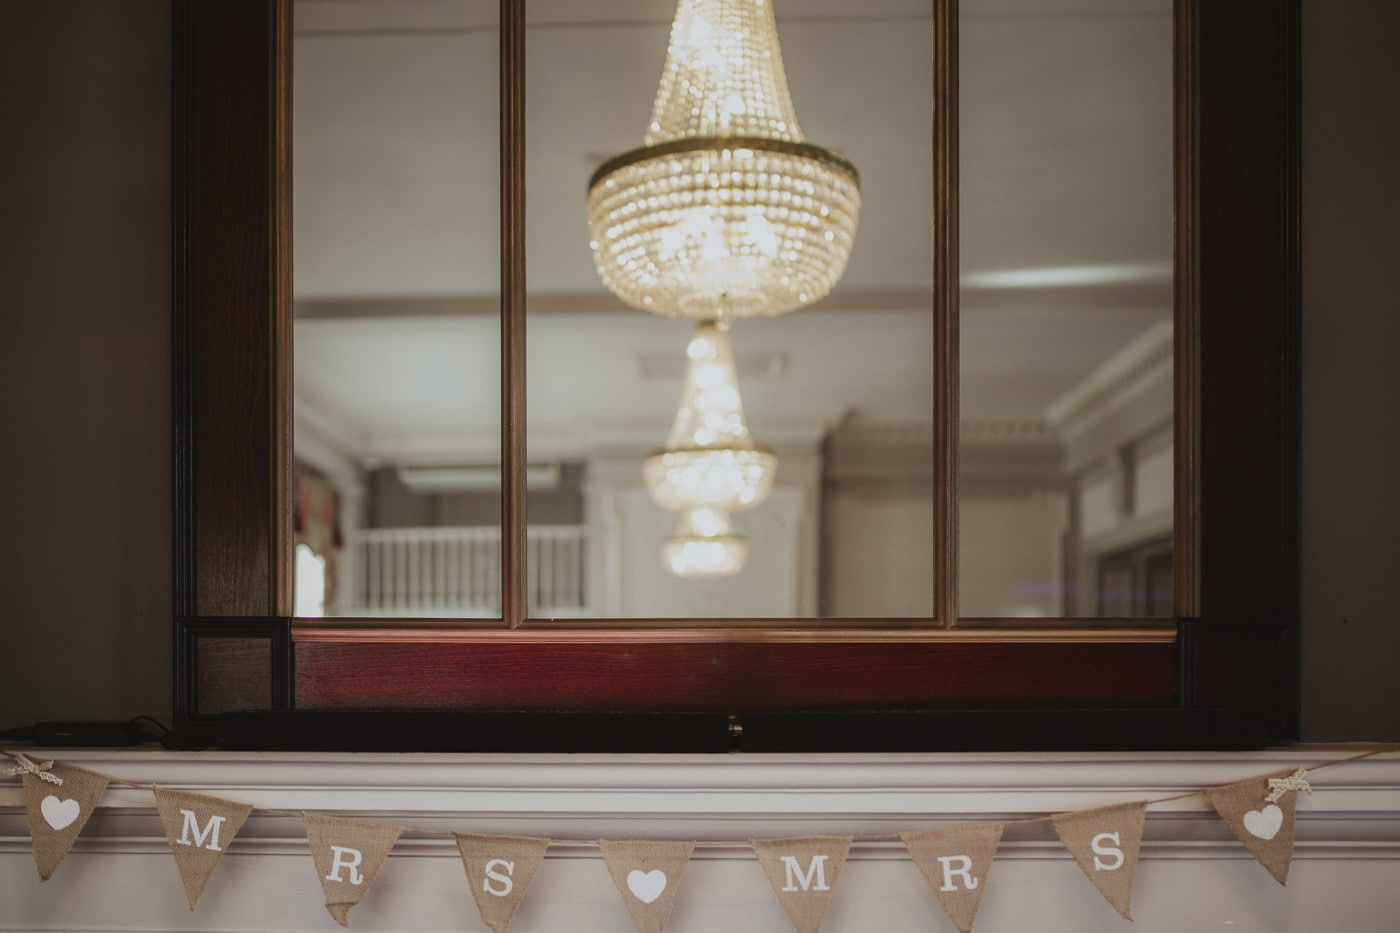 Bunting and light in mirror for wedding photography by Joshua Wyborn